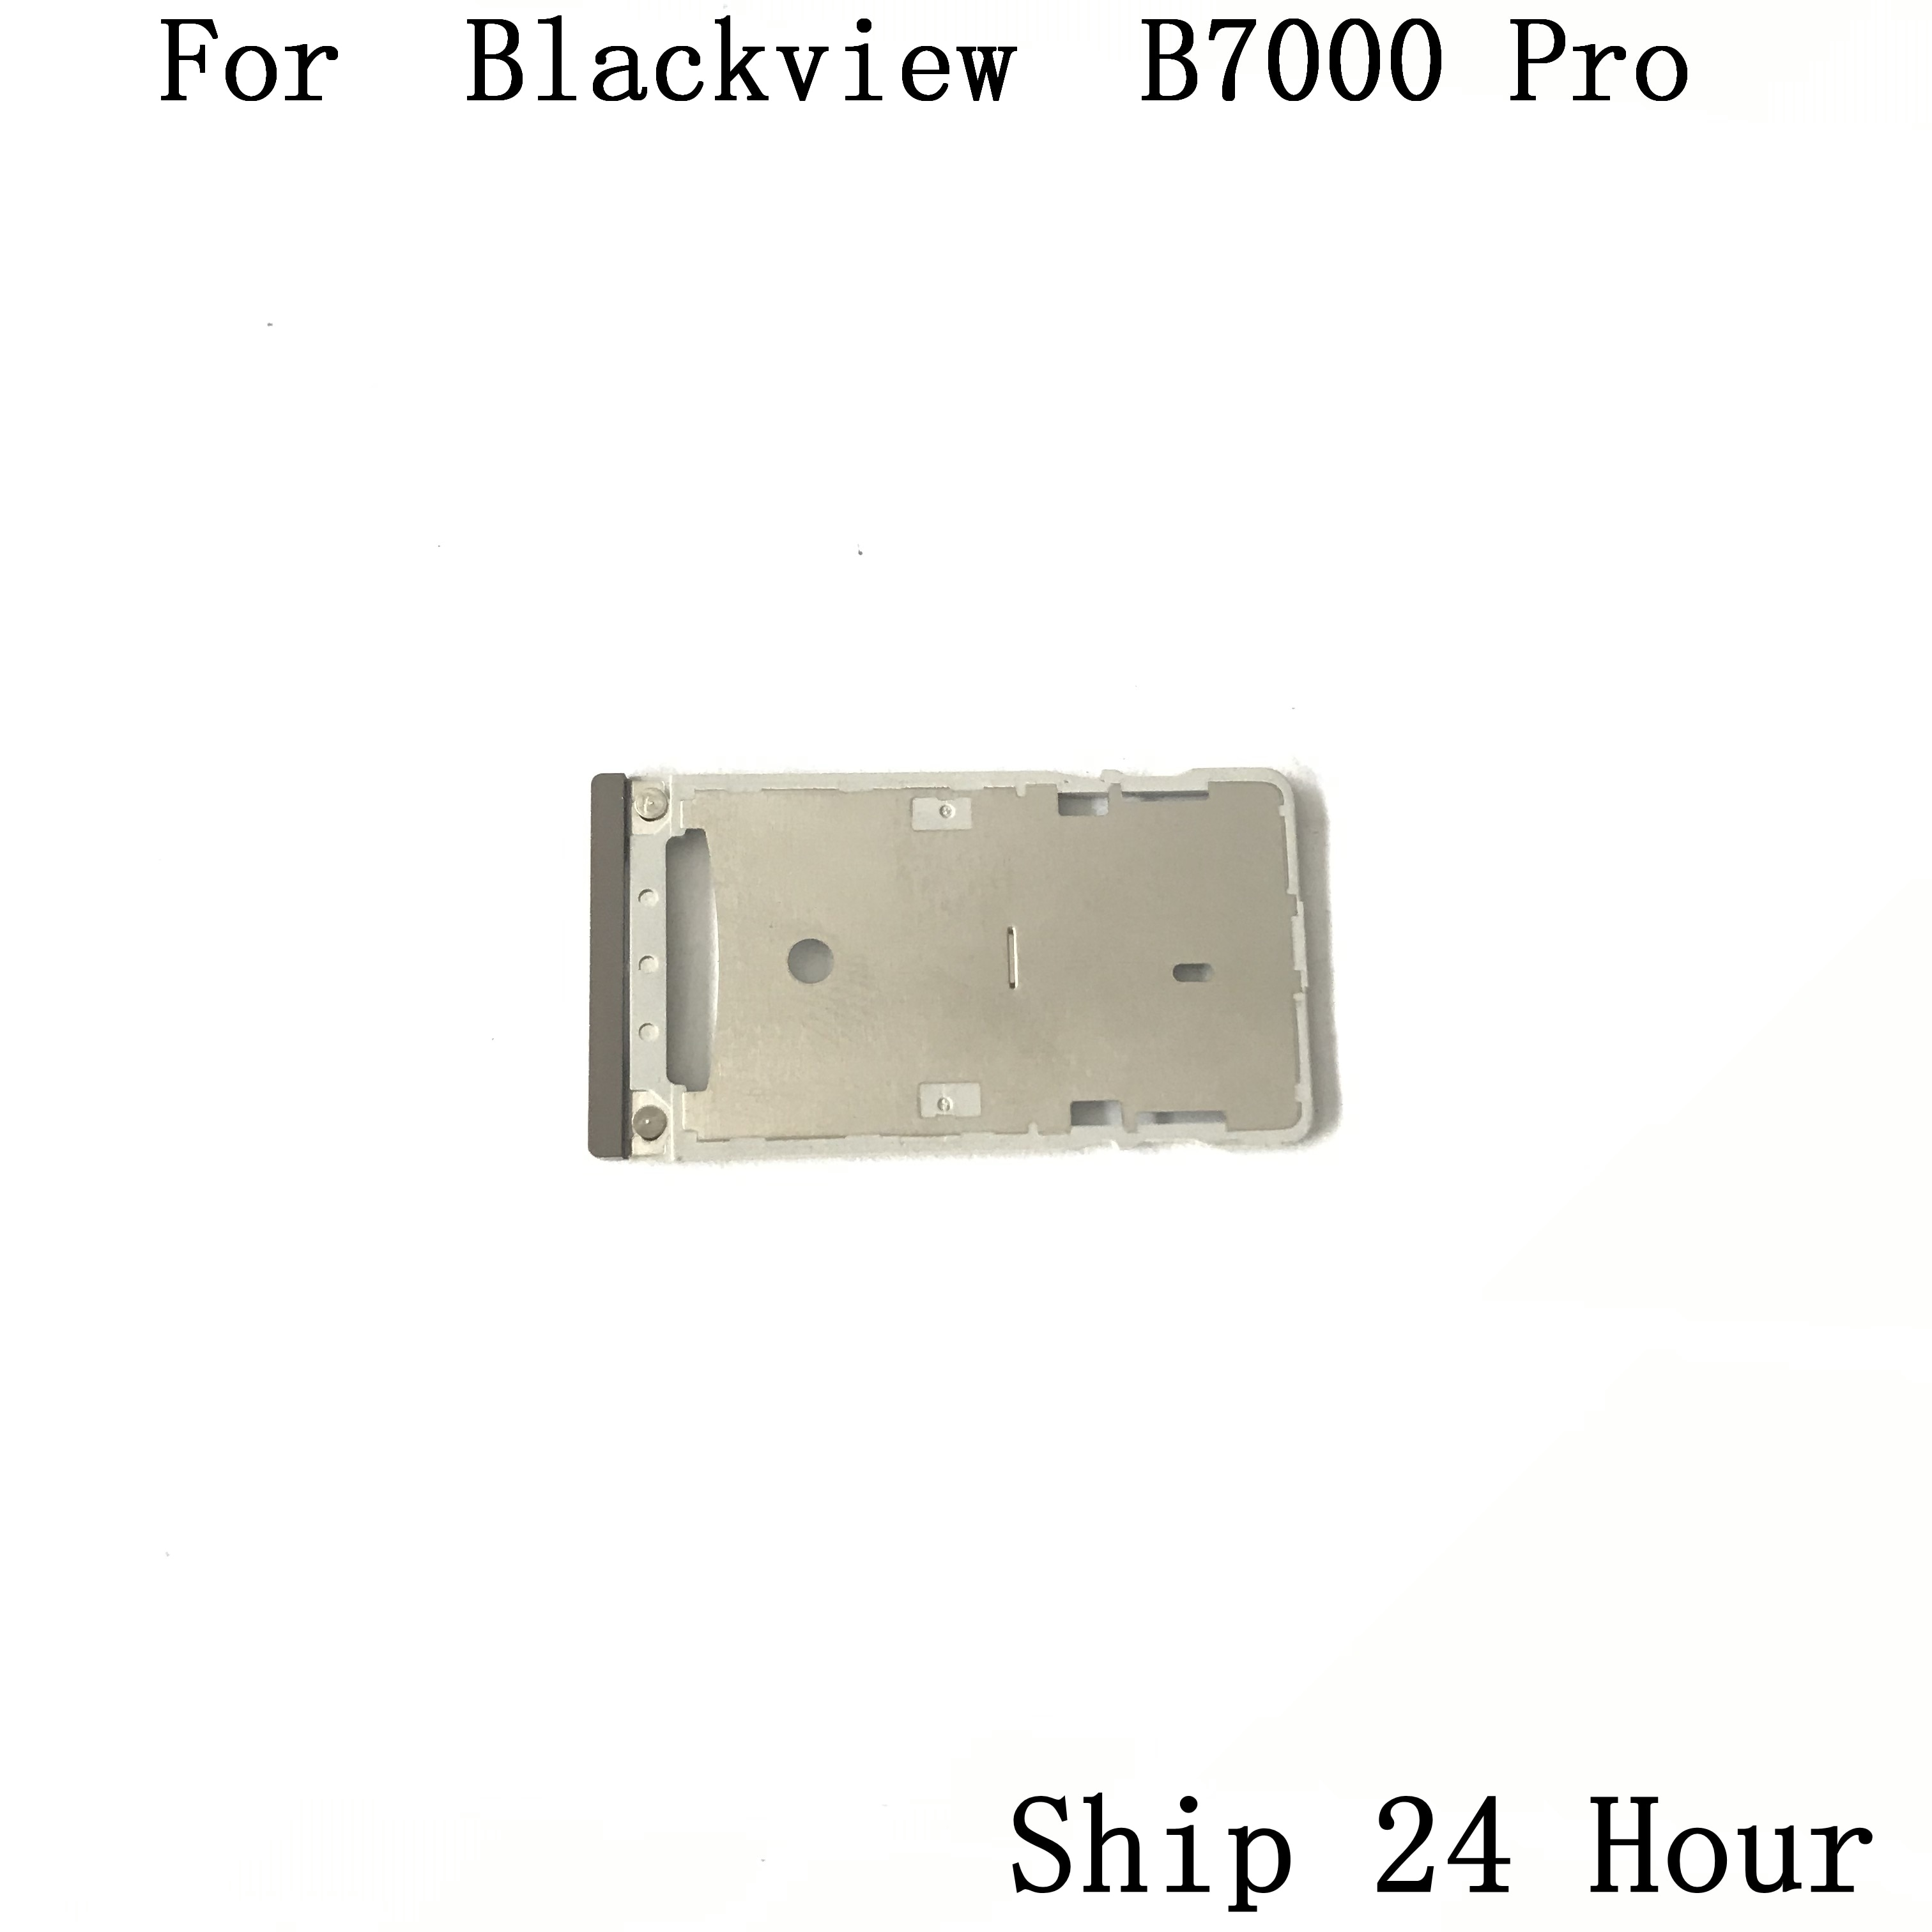 Blackview BV7000 New Sim Card Holder Tray Card Slot For Blackview BV7000 Pro MTK6750 Octa Core 5.0 inch 1920x1080 Free Shipping enlarge